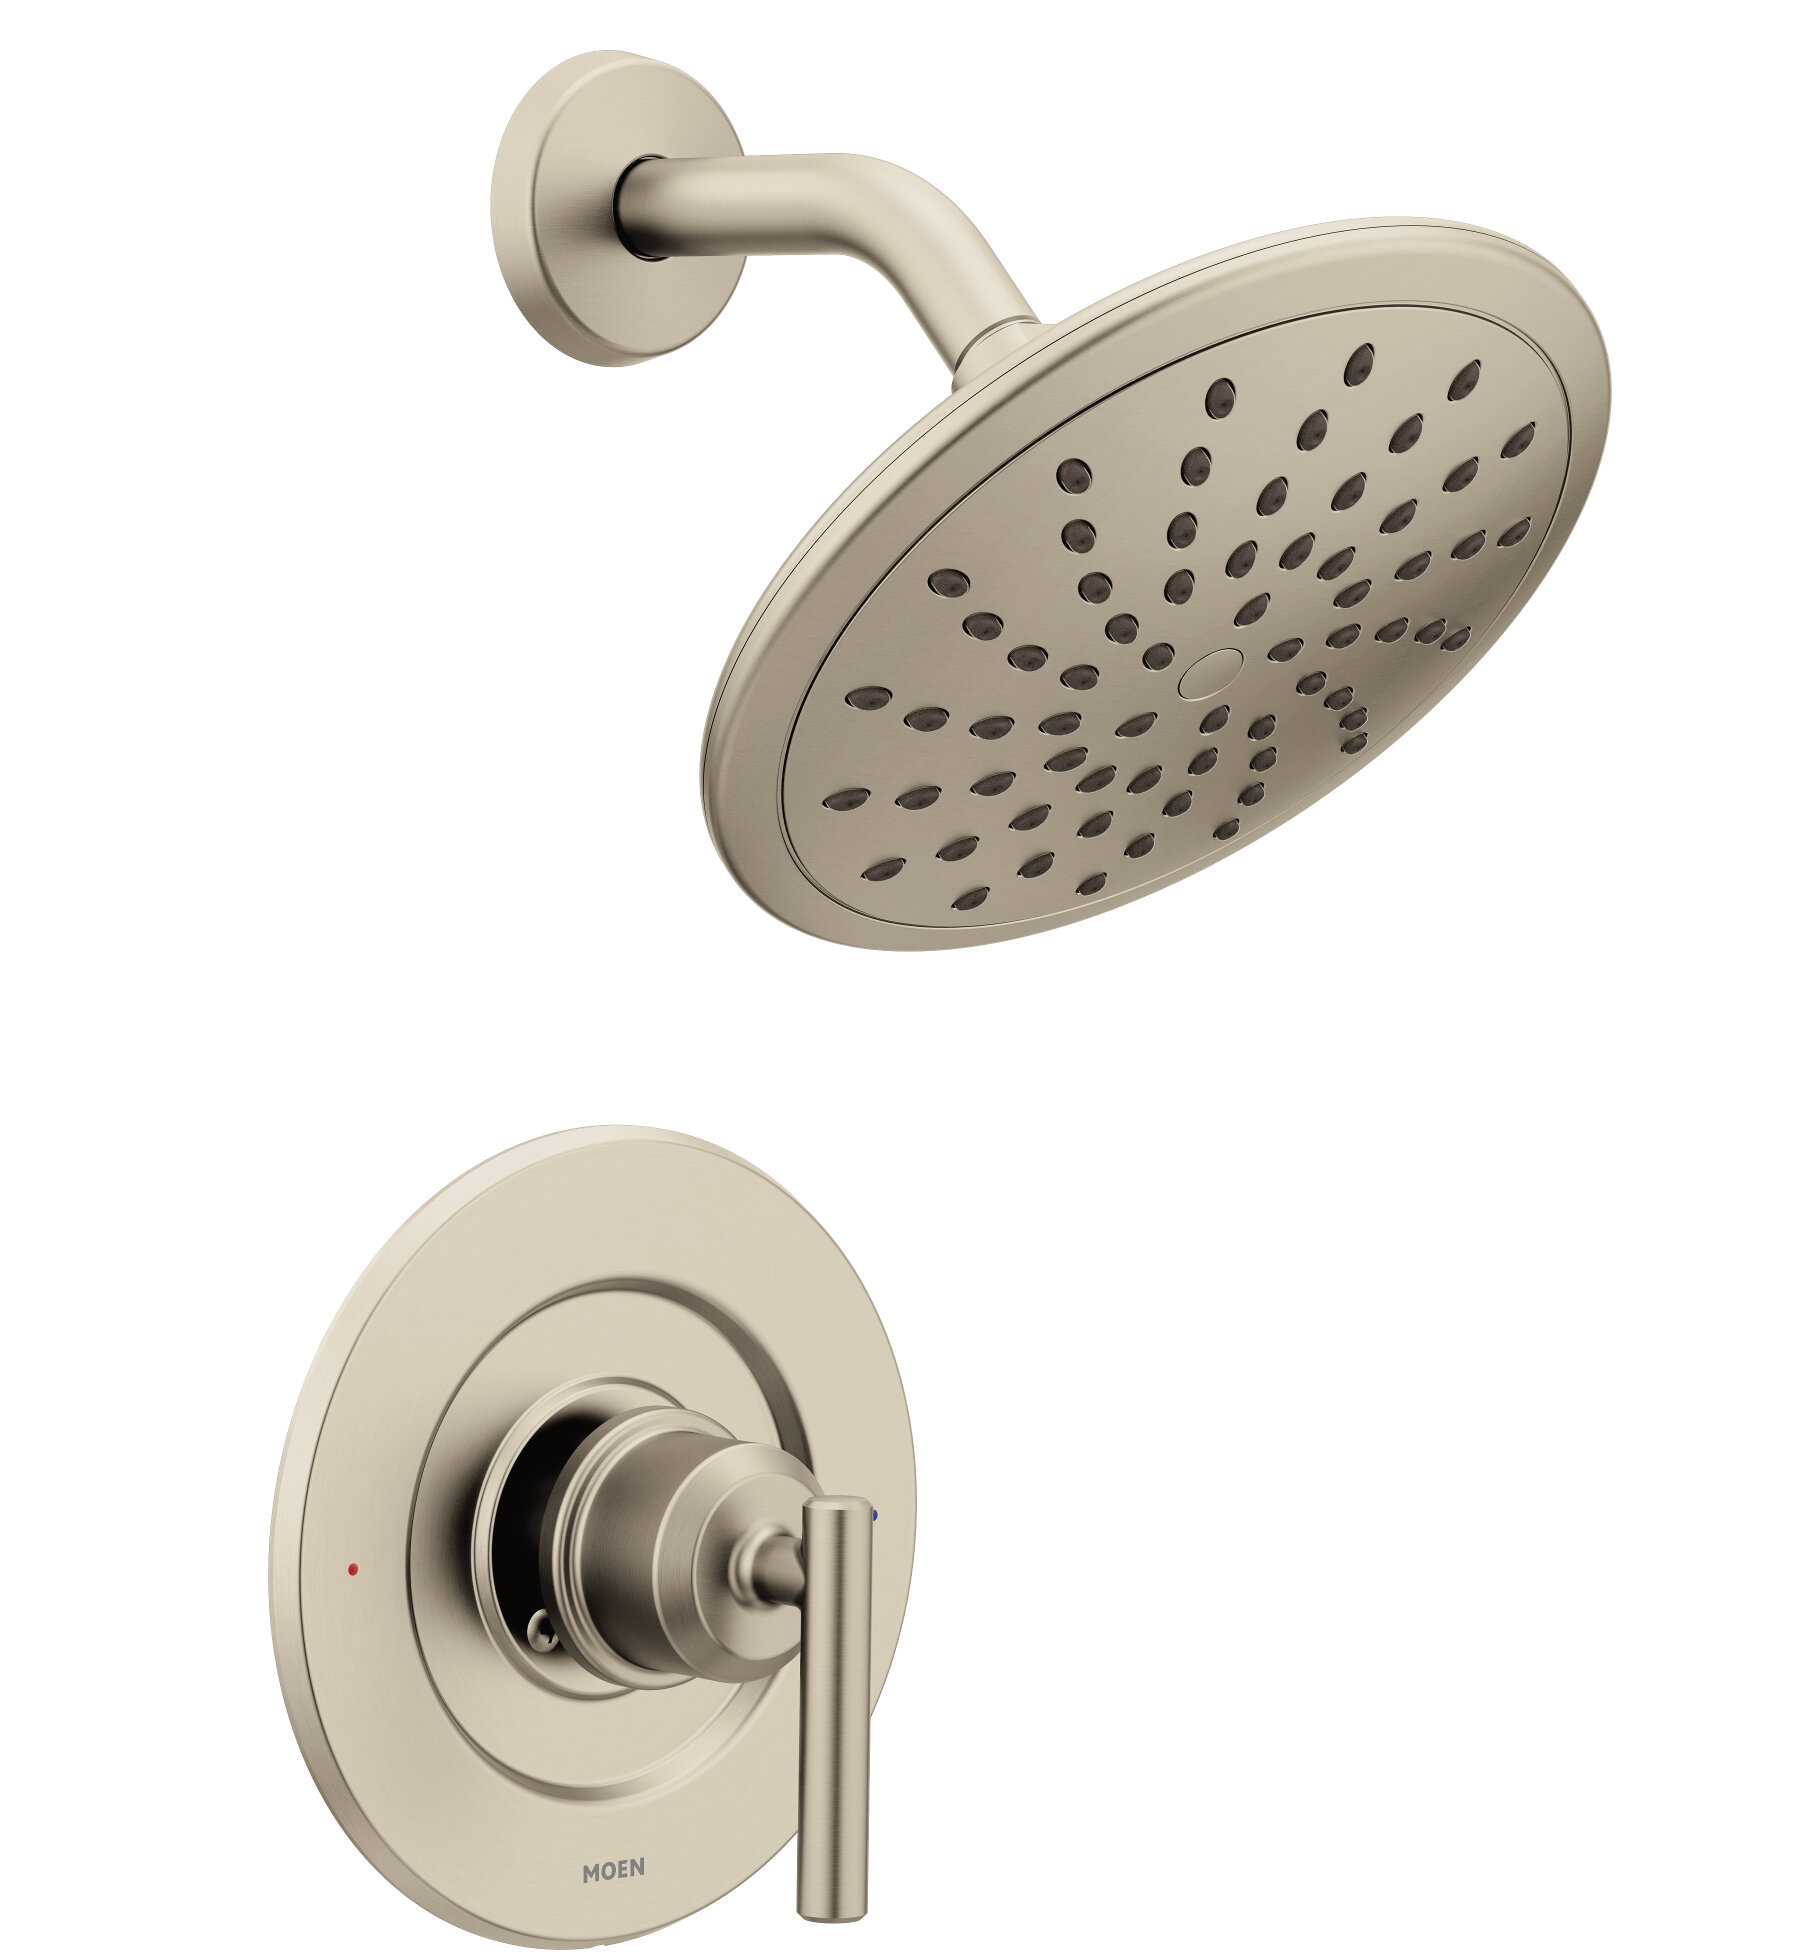 Moen Gibson Posi Temp One Handle Tub And Shower Faucet With Diverter